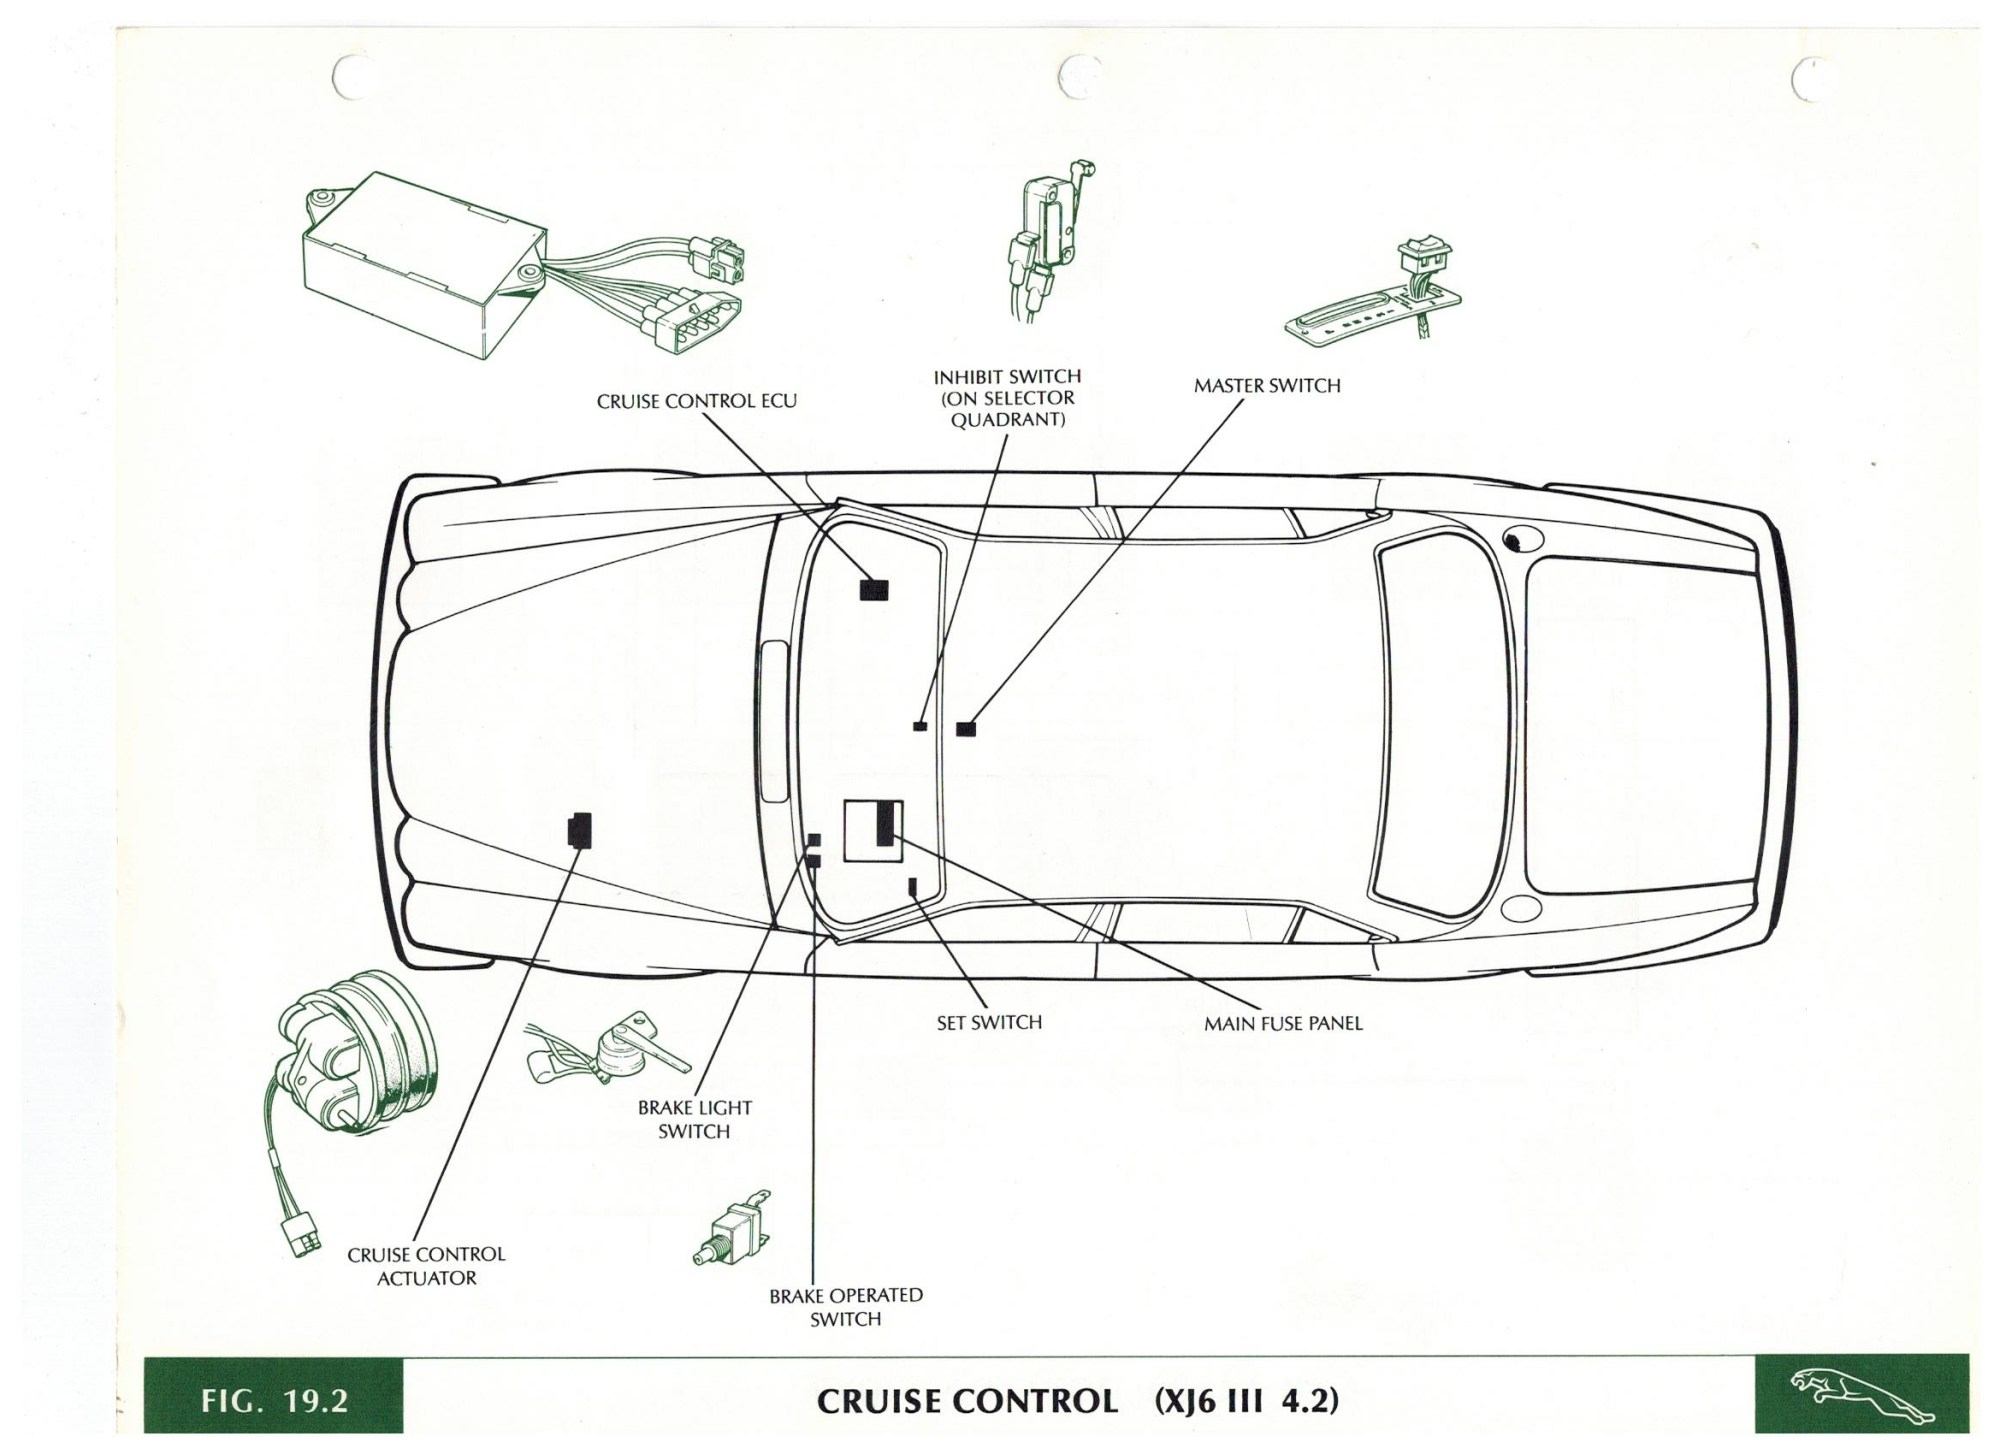 hight resolution of jaguar cruise control diagram wiring diagram val jaguar cruise control diagram